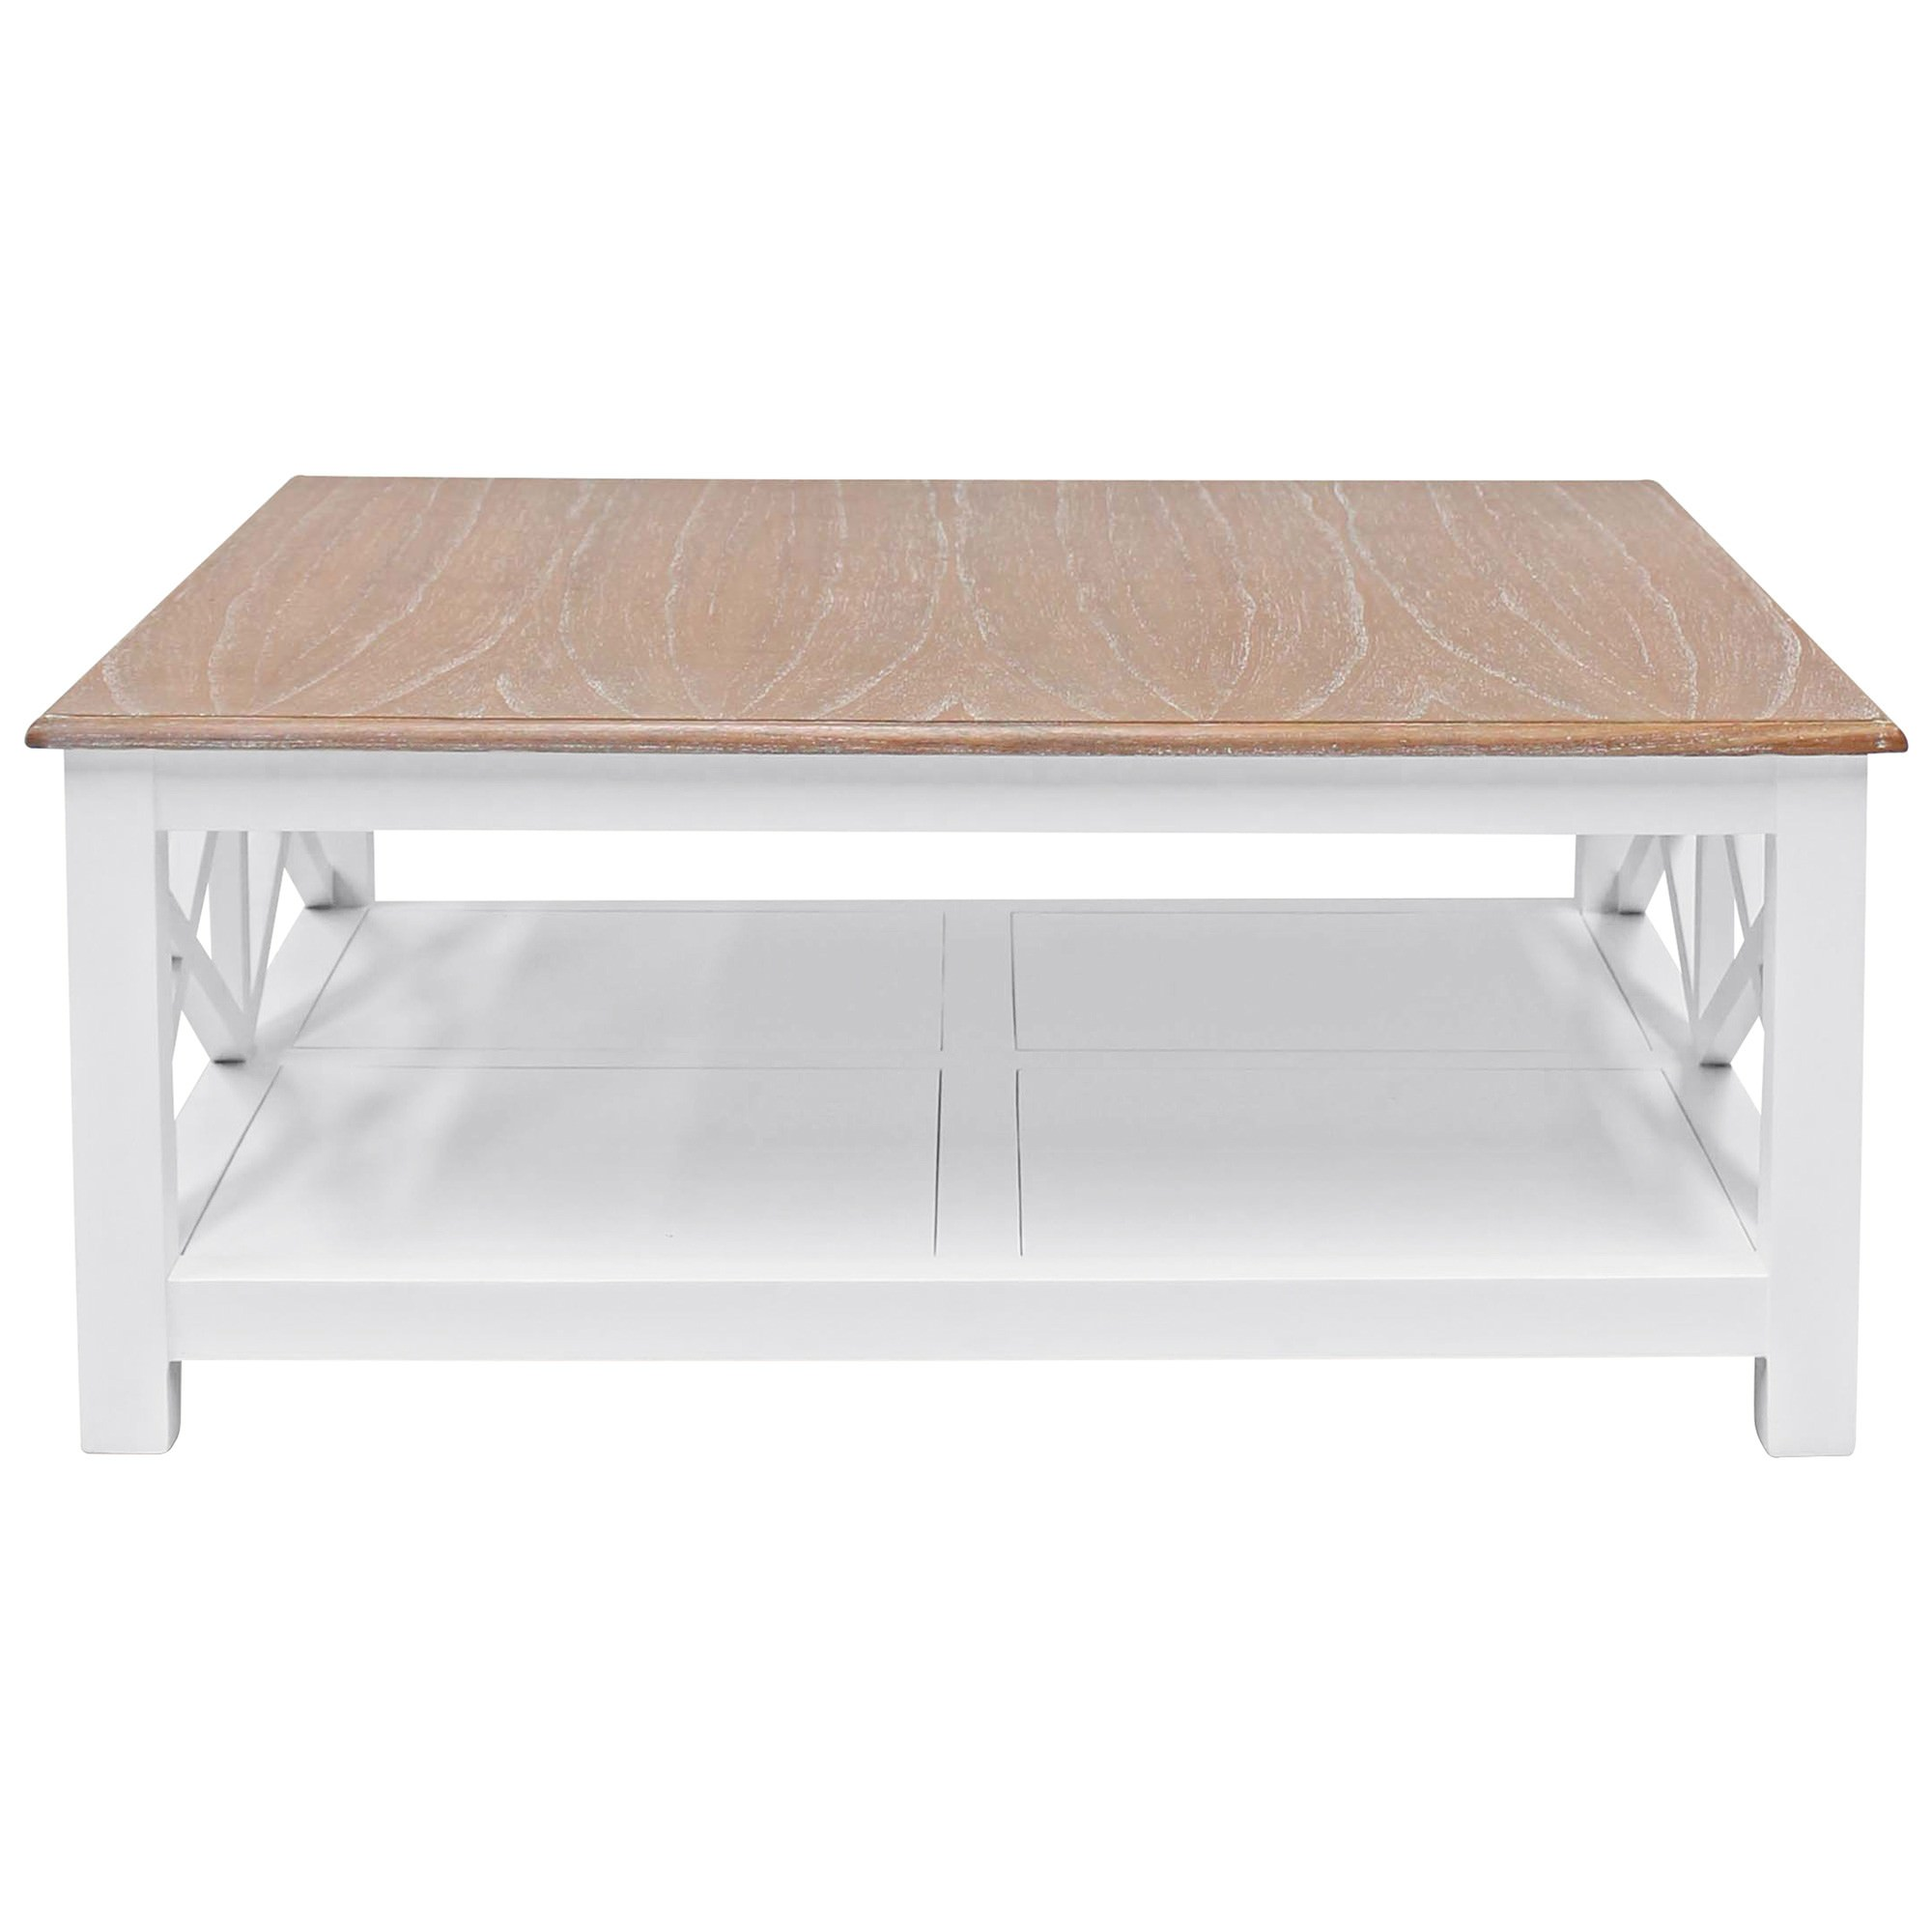 Belley Hand Crafted Mindi Wood Coffee Table with Shelf, 110cm, White / Weathered Oak